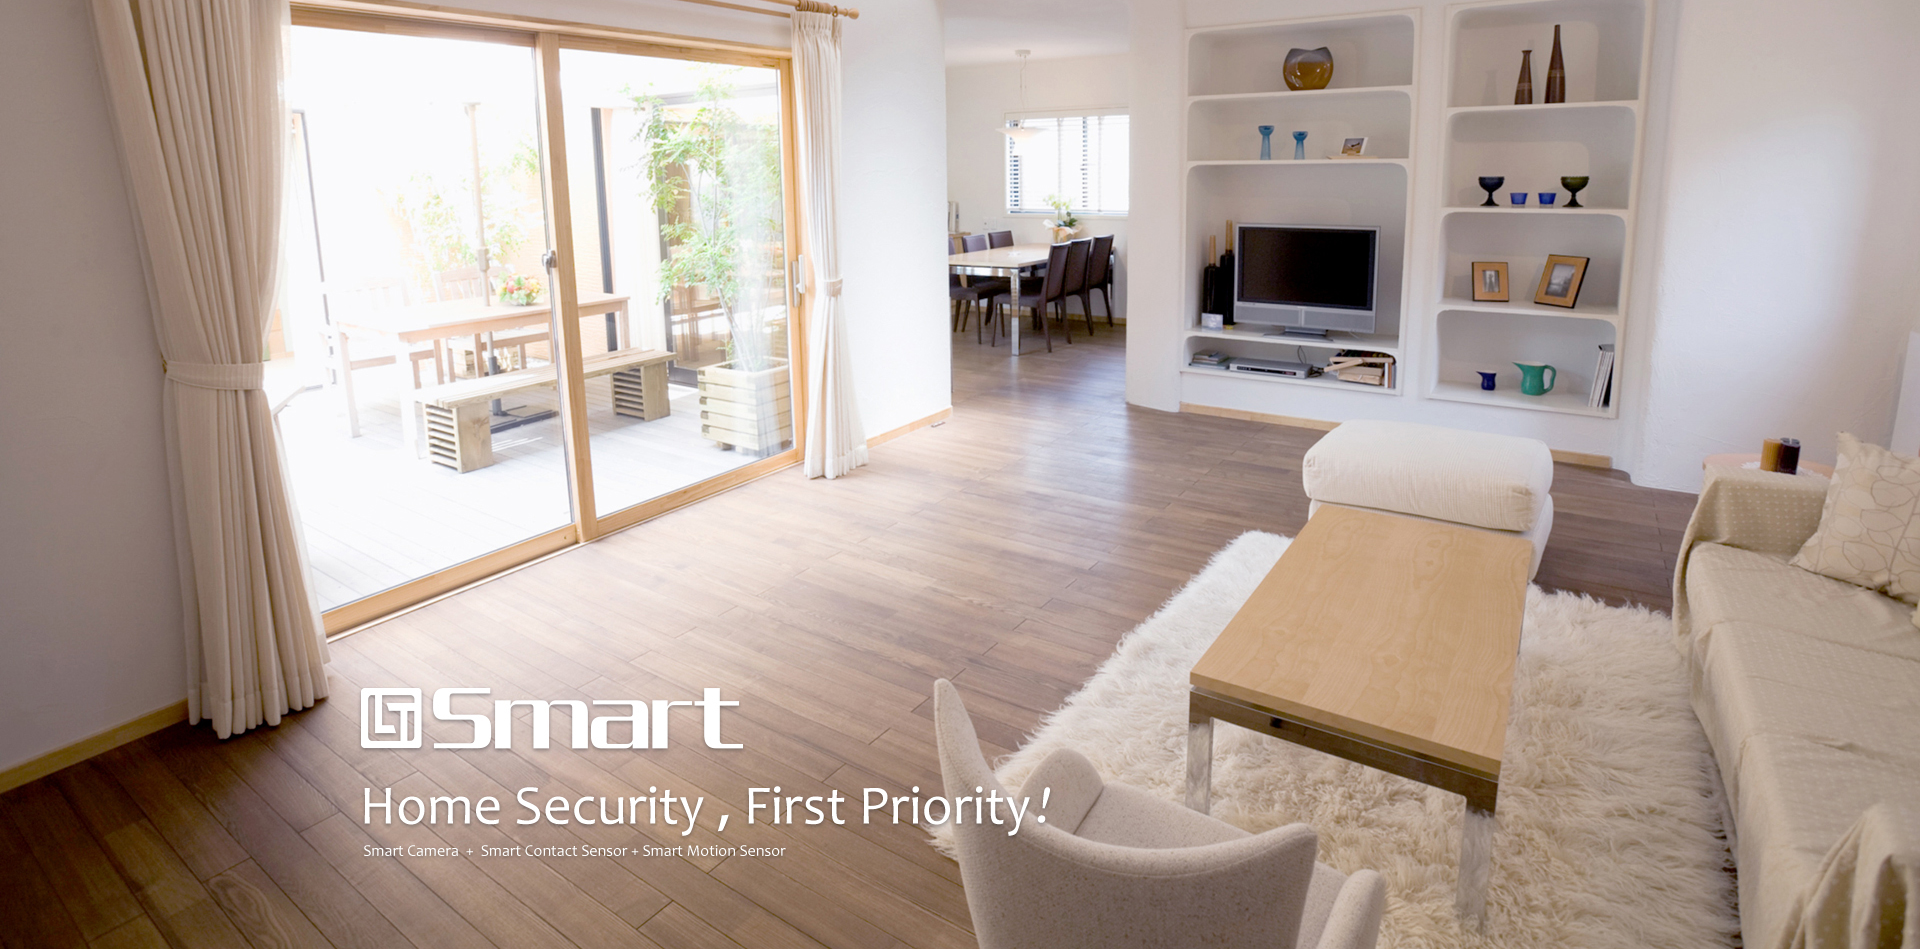 Smart Home Security Solution